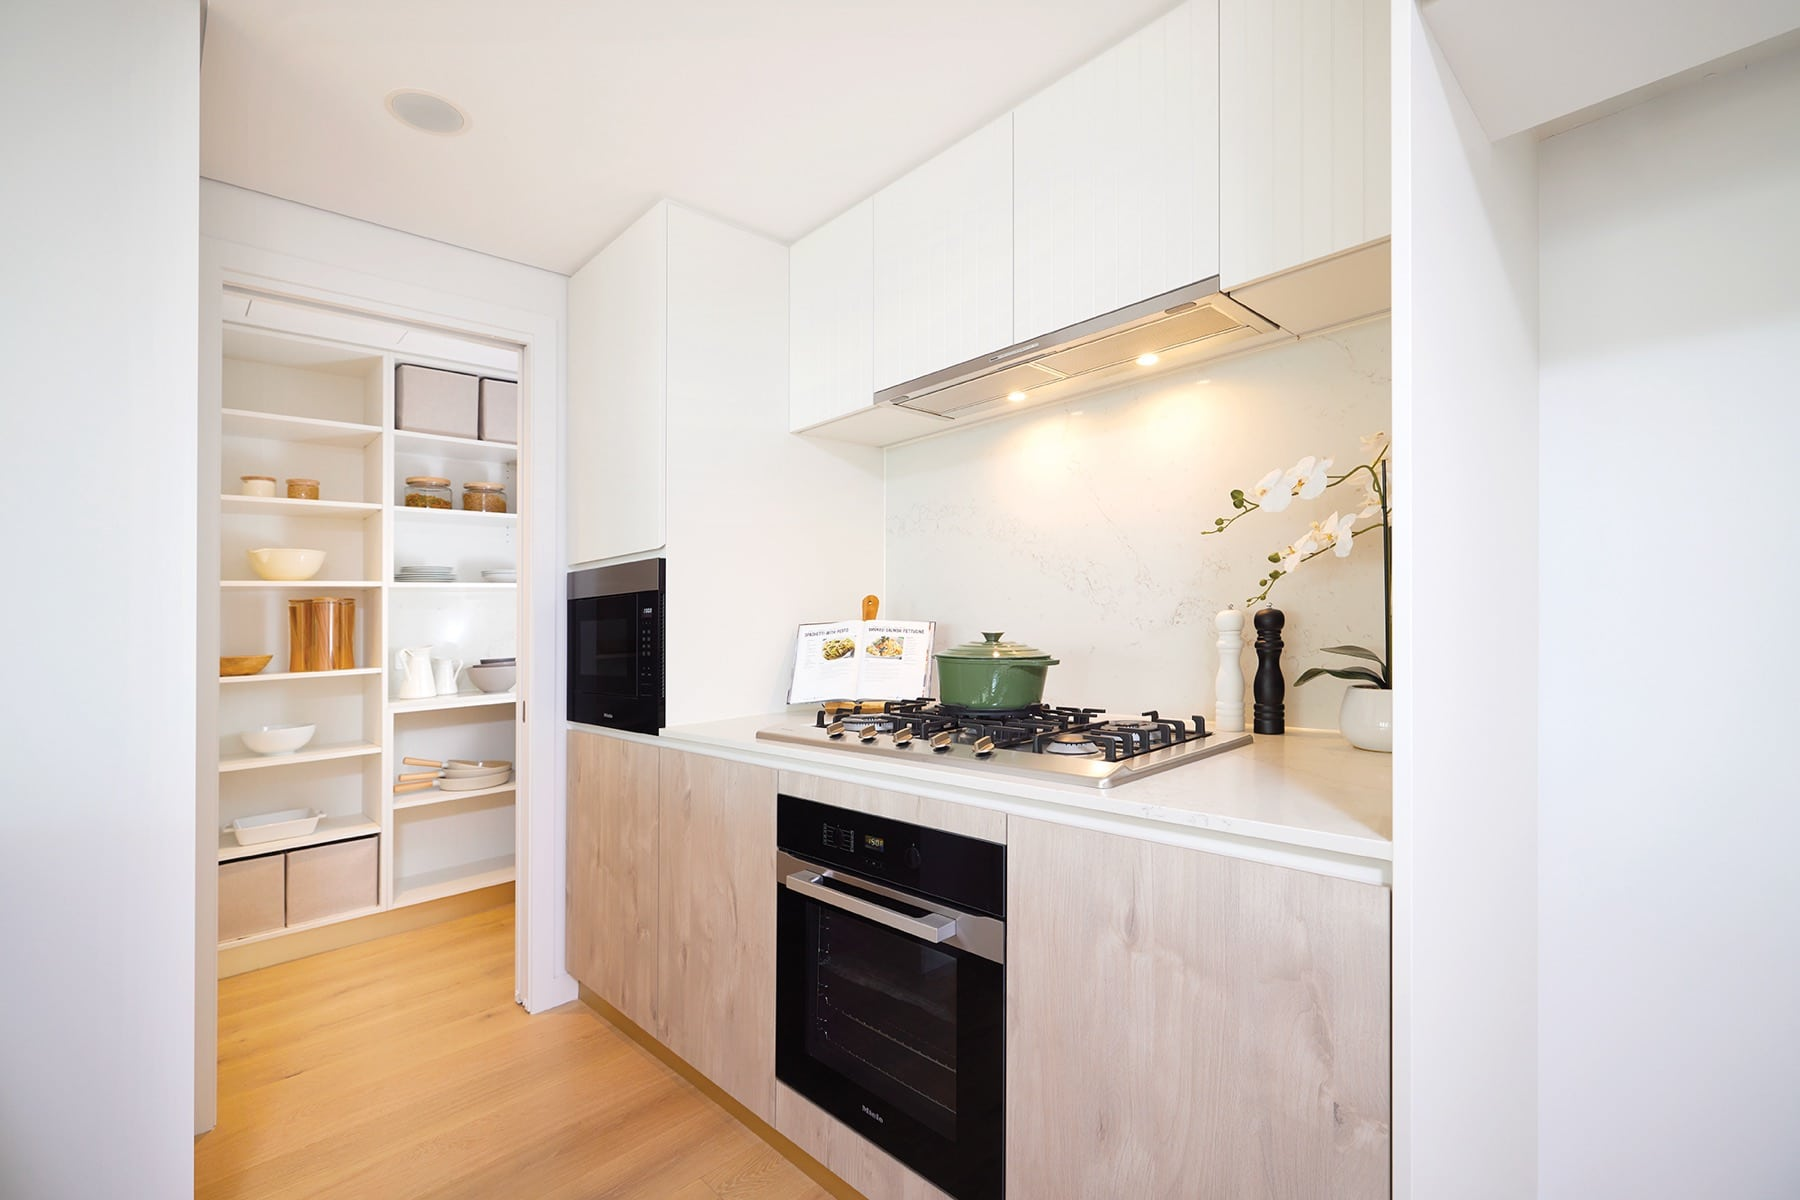 3 Bedroom Kitchen and butlers pantry